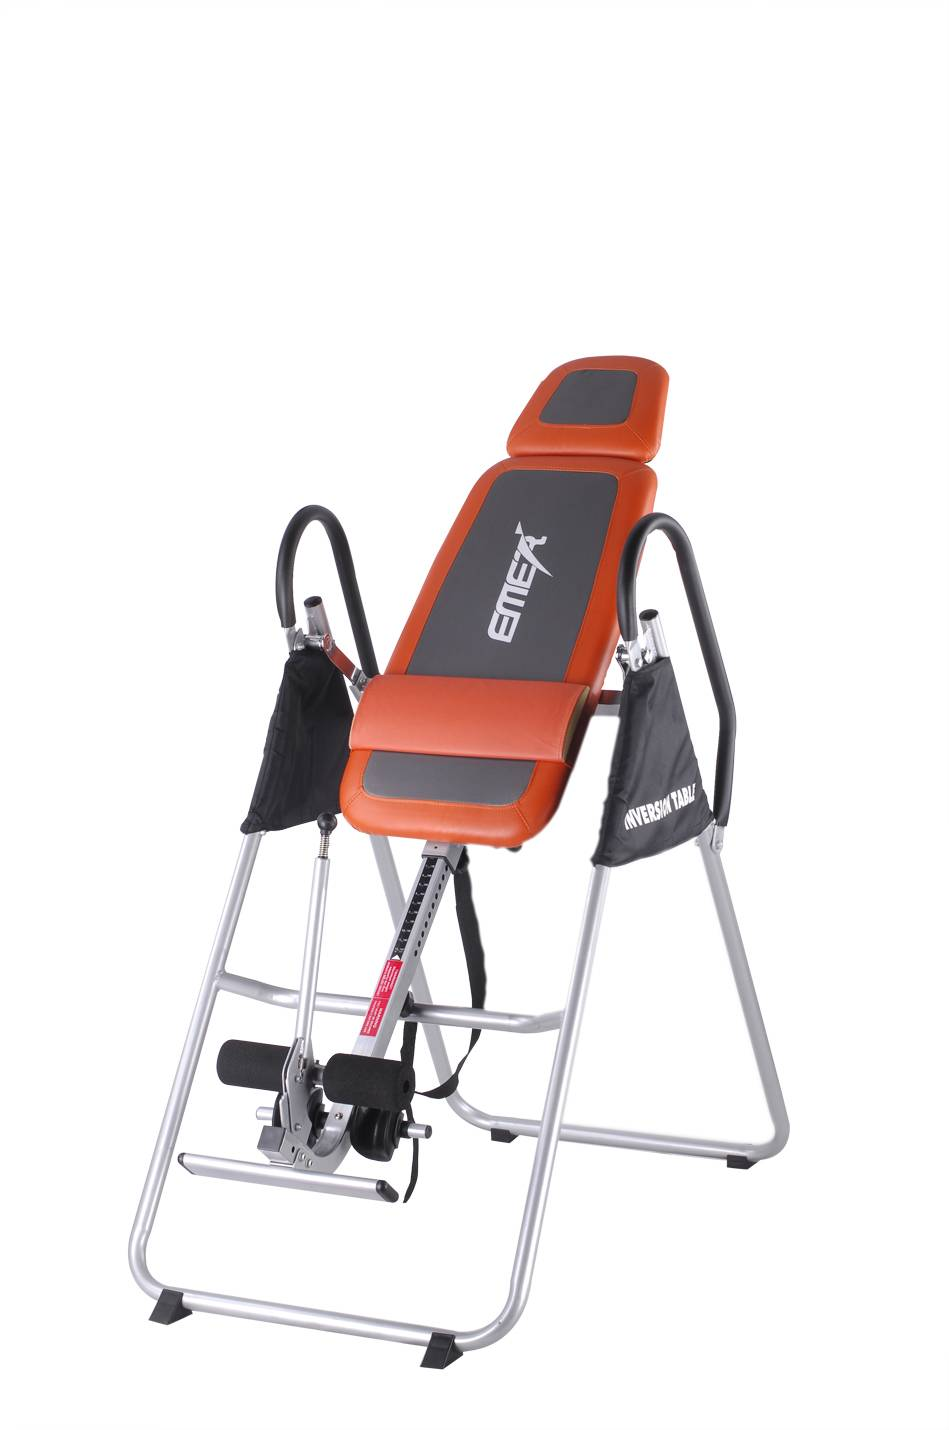 EMER XJ-I-02C Made in china high quality Anti-Gravity Therapy Inversion Table with CE